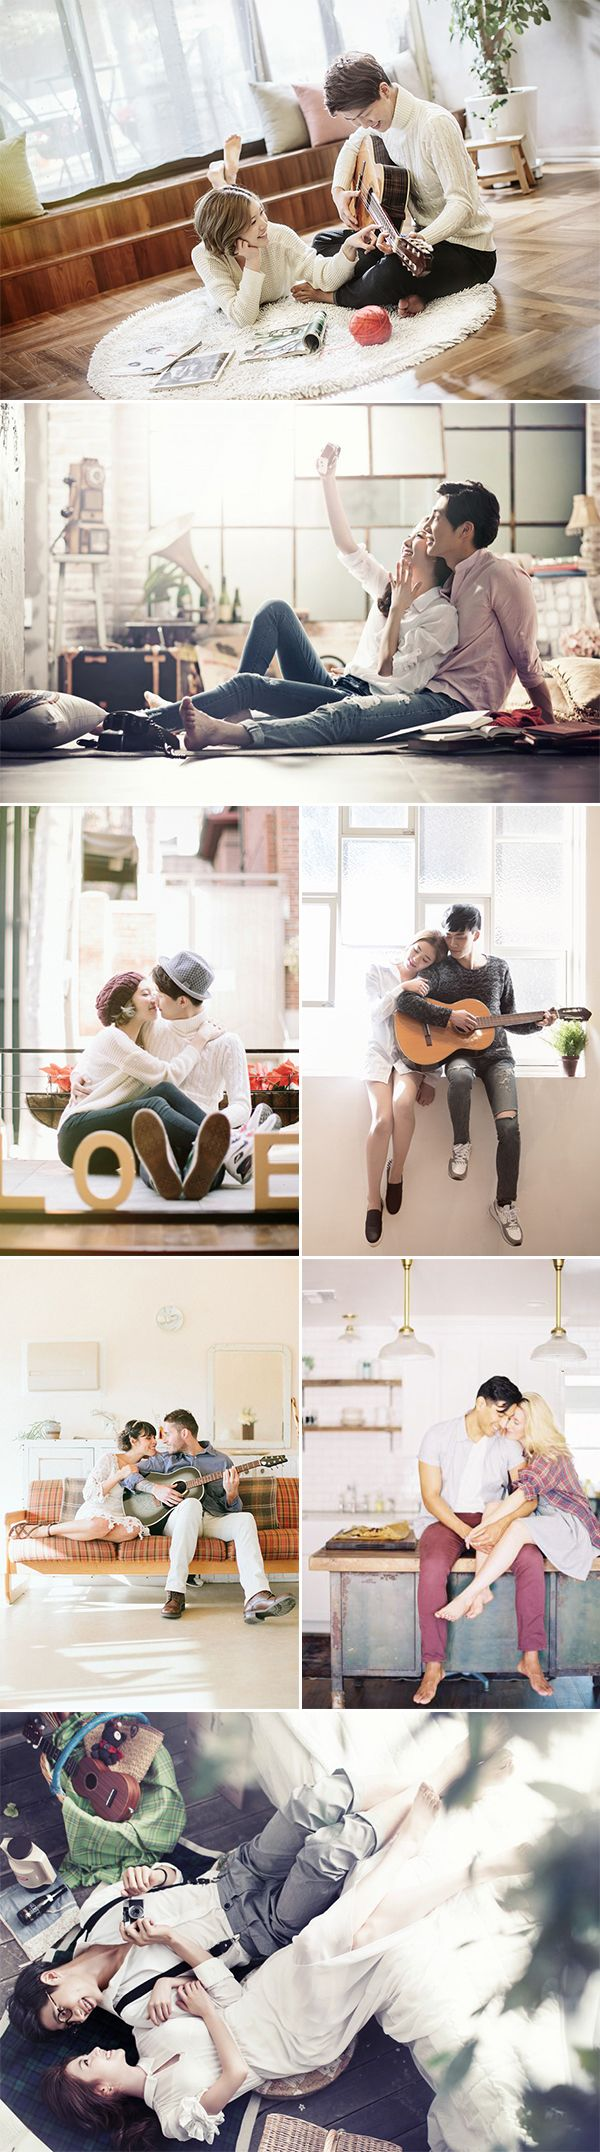 A Sweet Date! 25 Cute and Romantic Engagement Photo Ideas - at home!